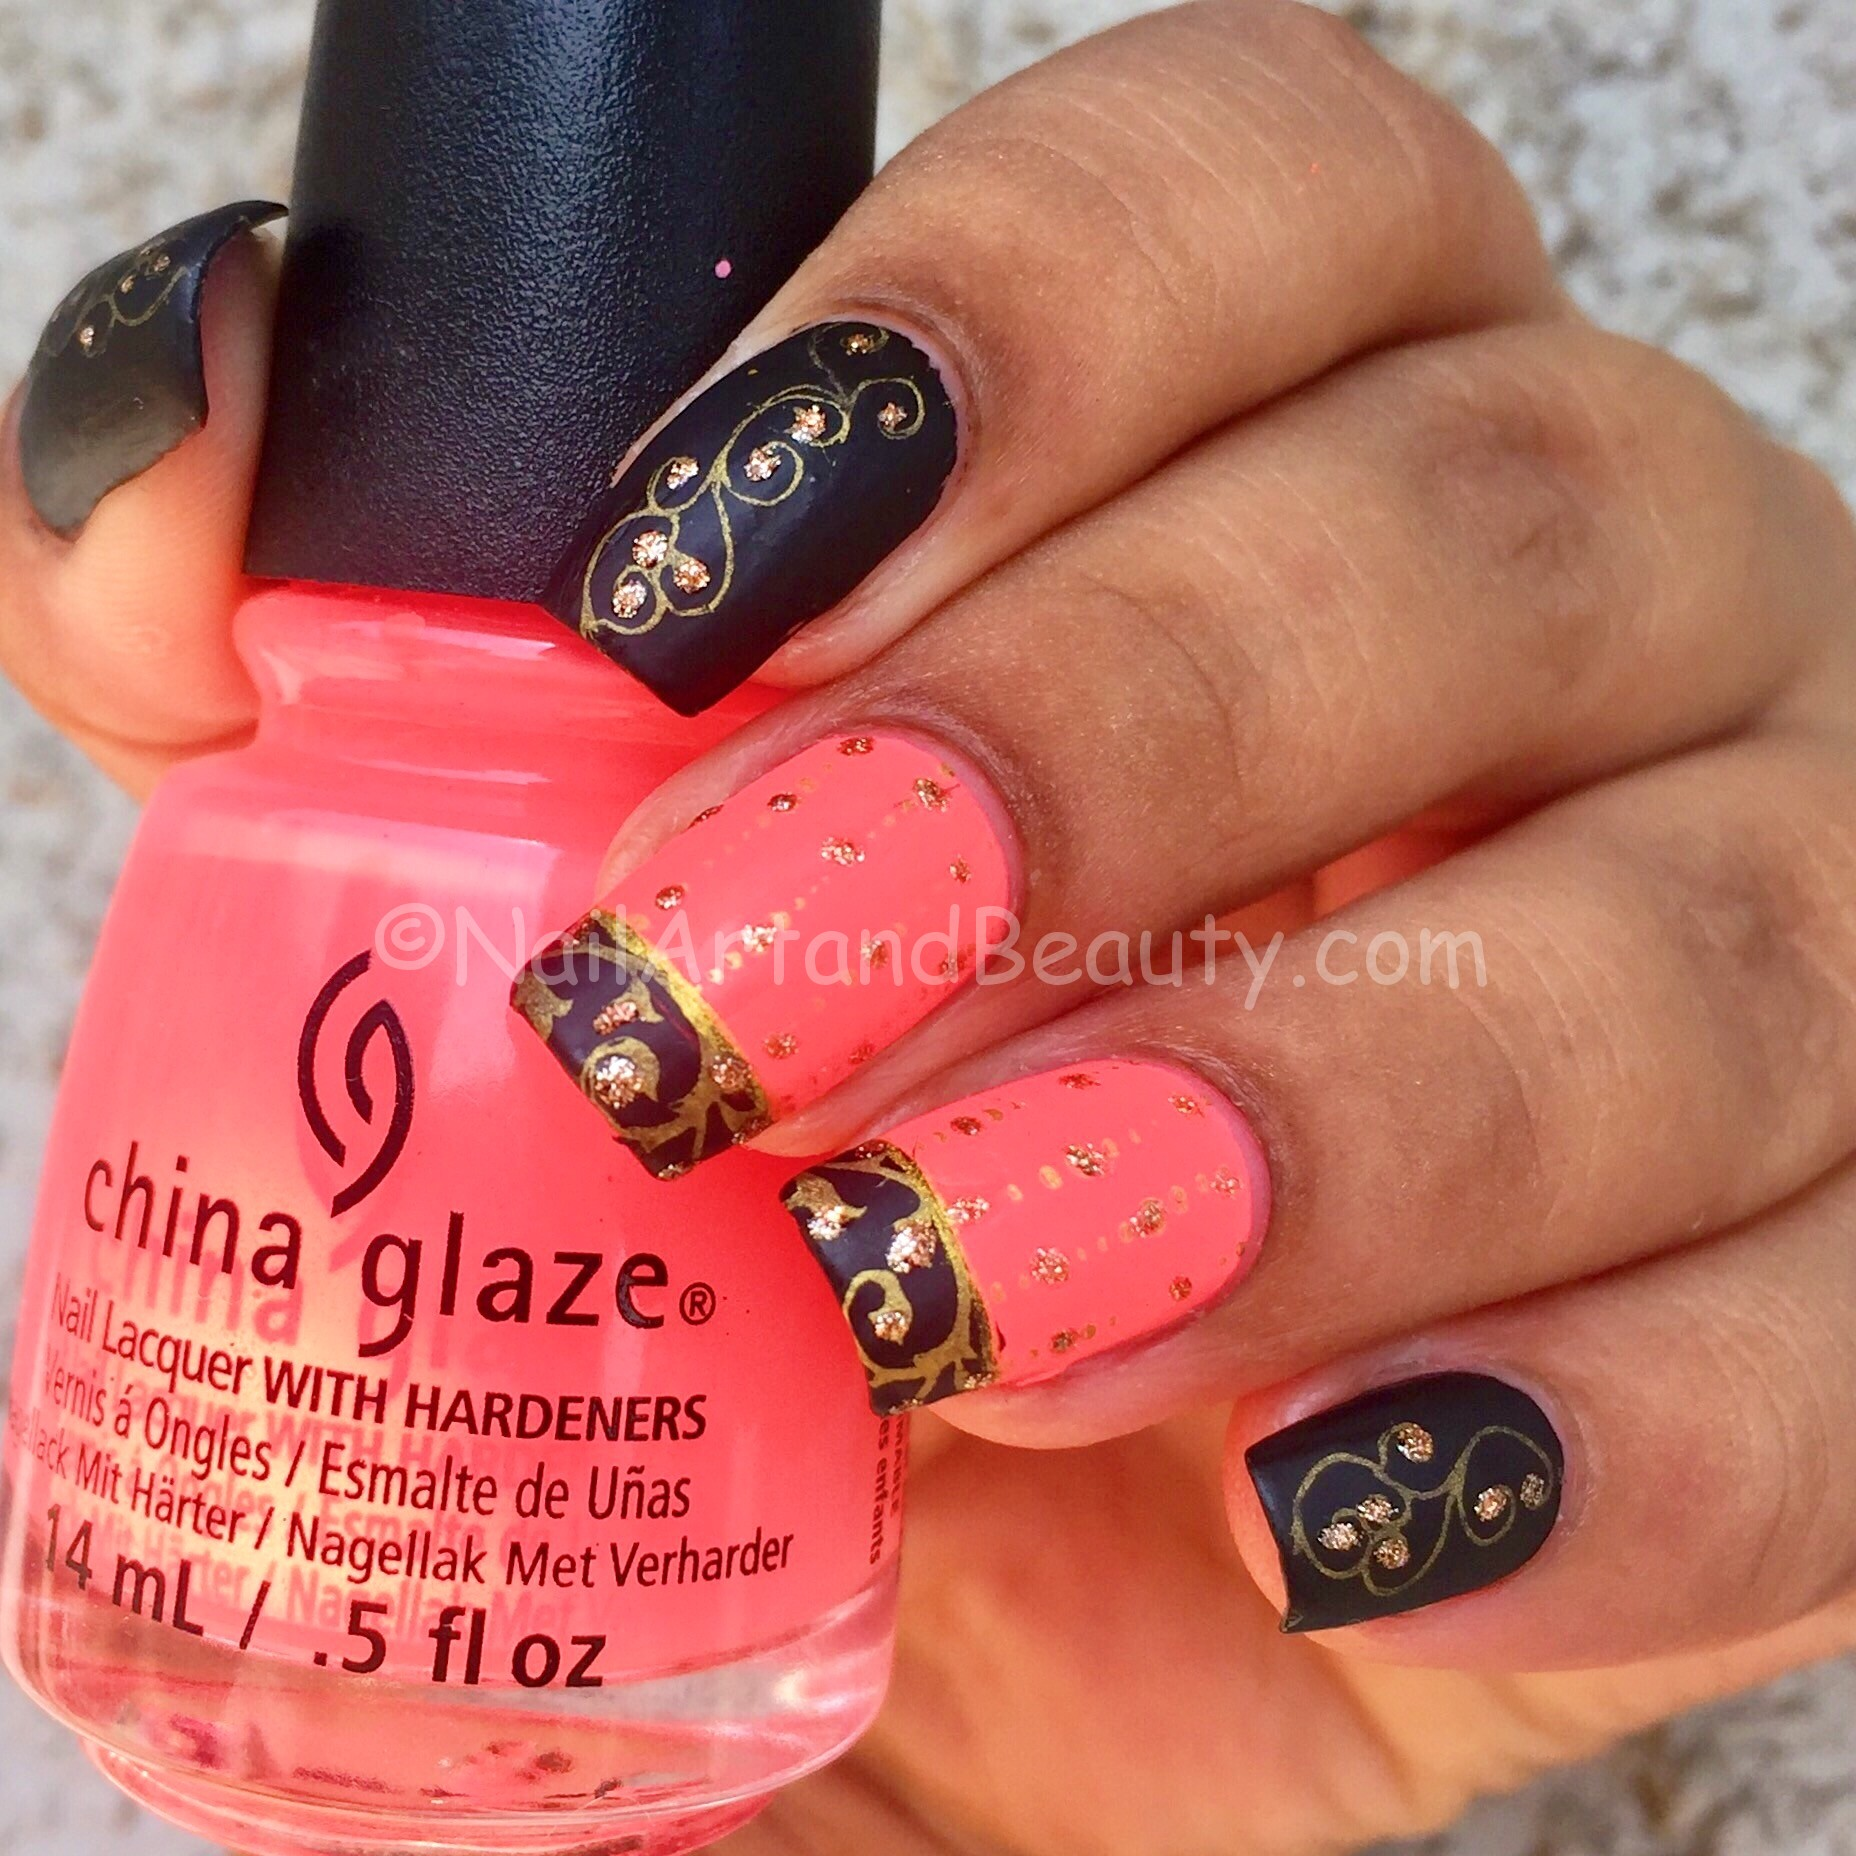 Bright Pink and Black Nails Inspired by Pari Choudhary